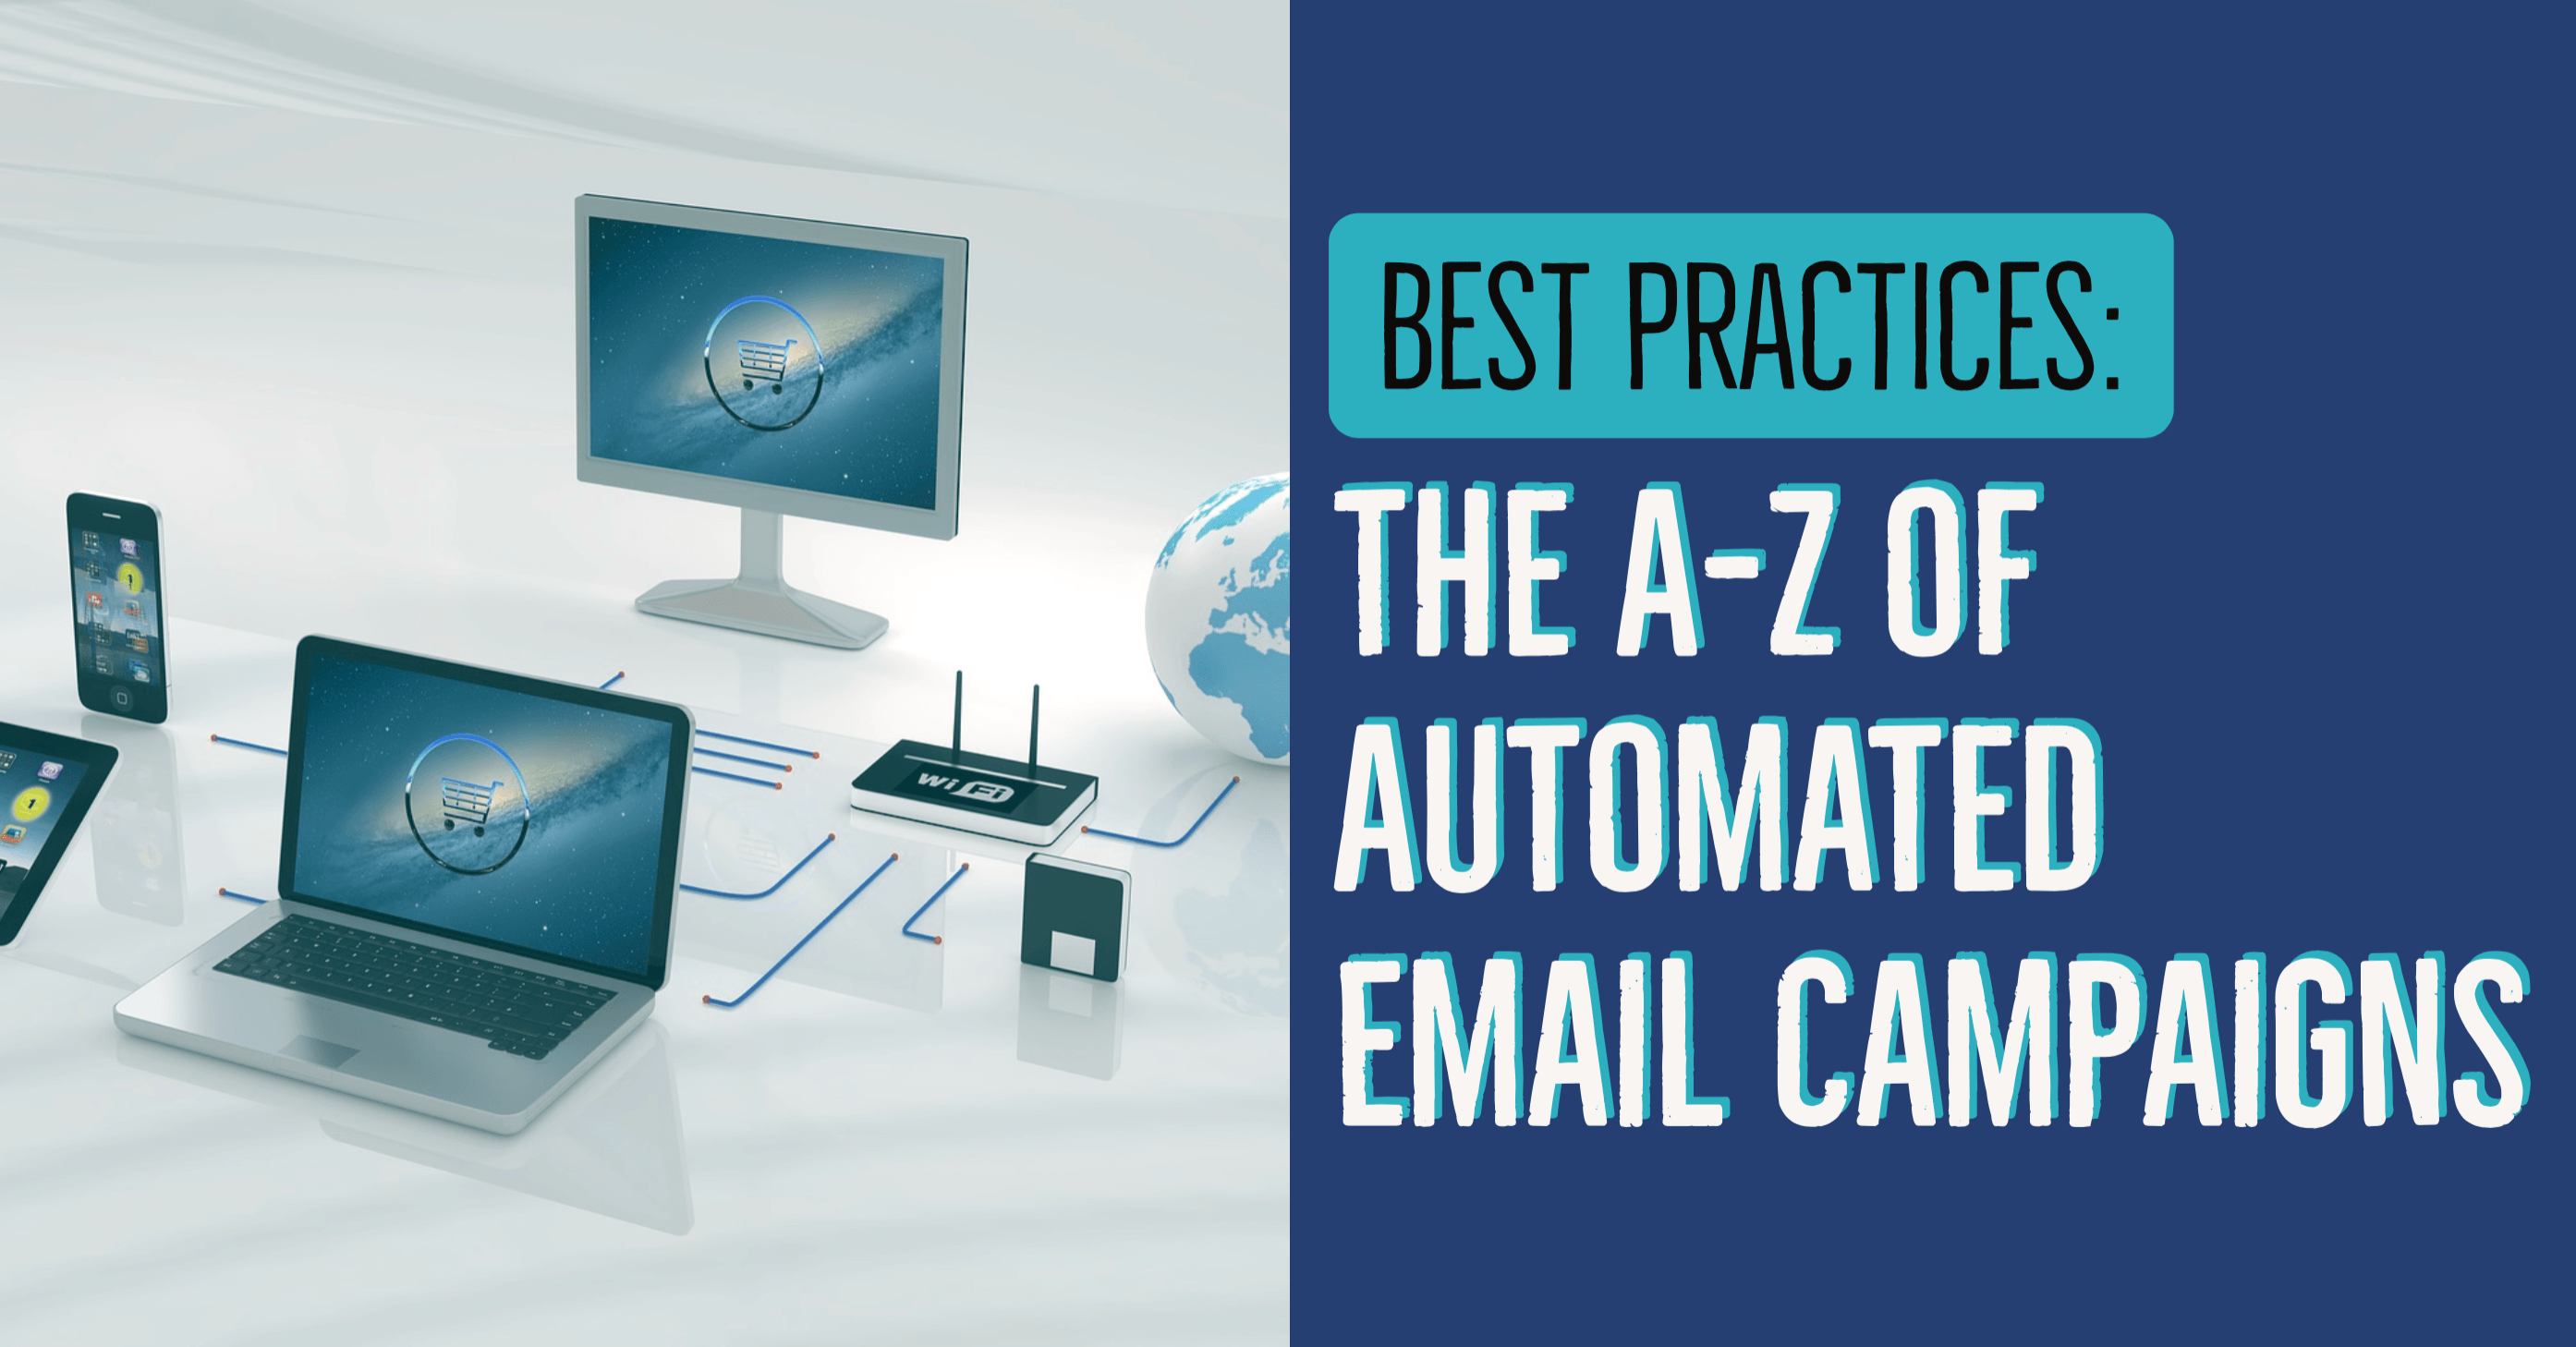 The A-Z of Automated Email Campaigns 20